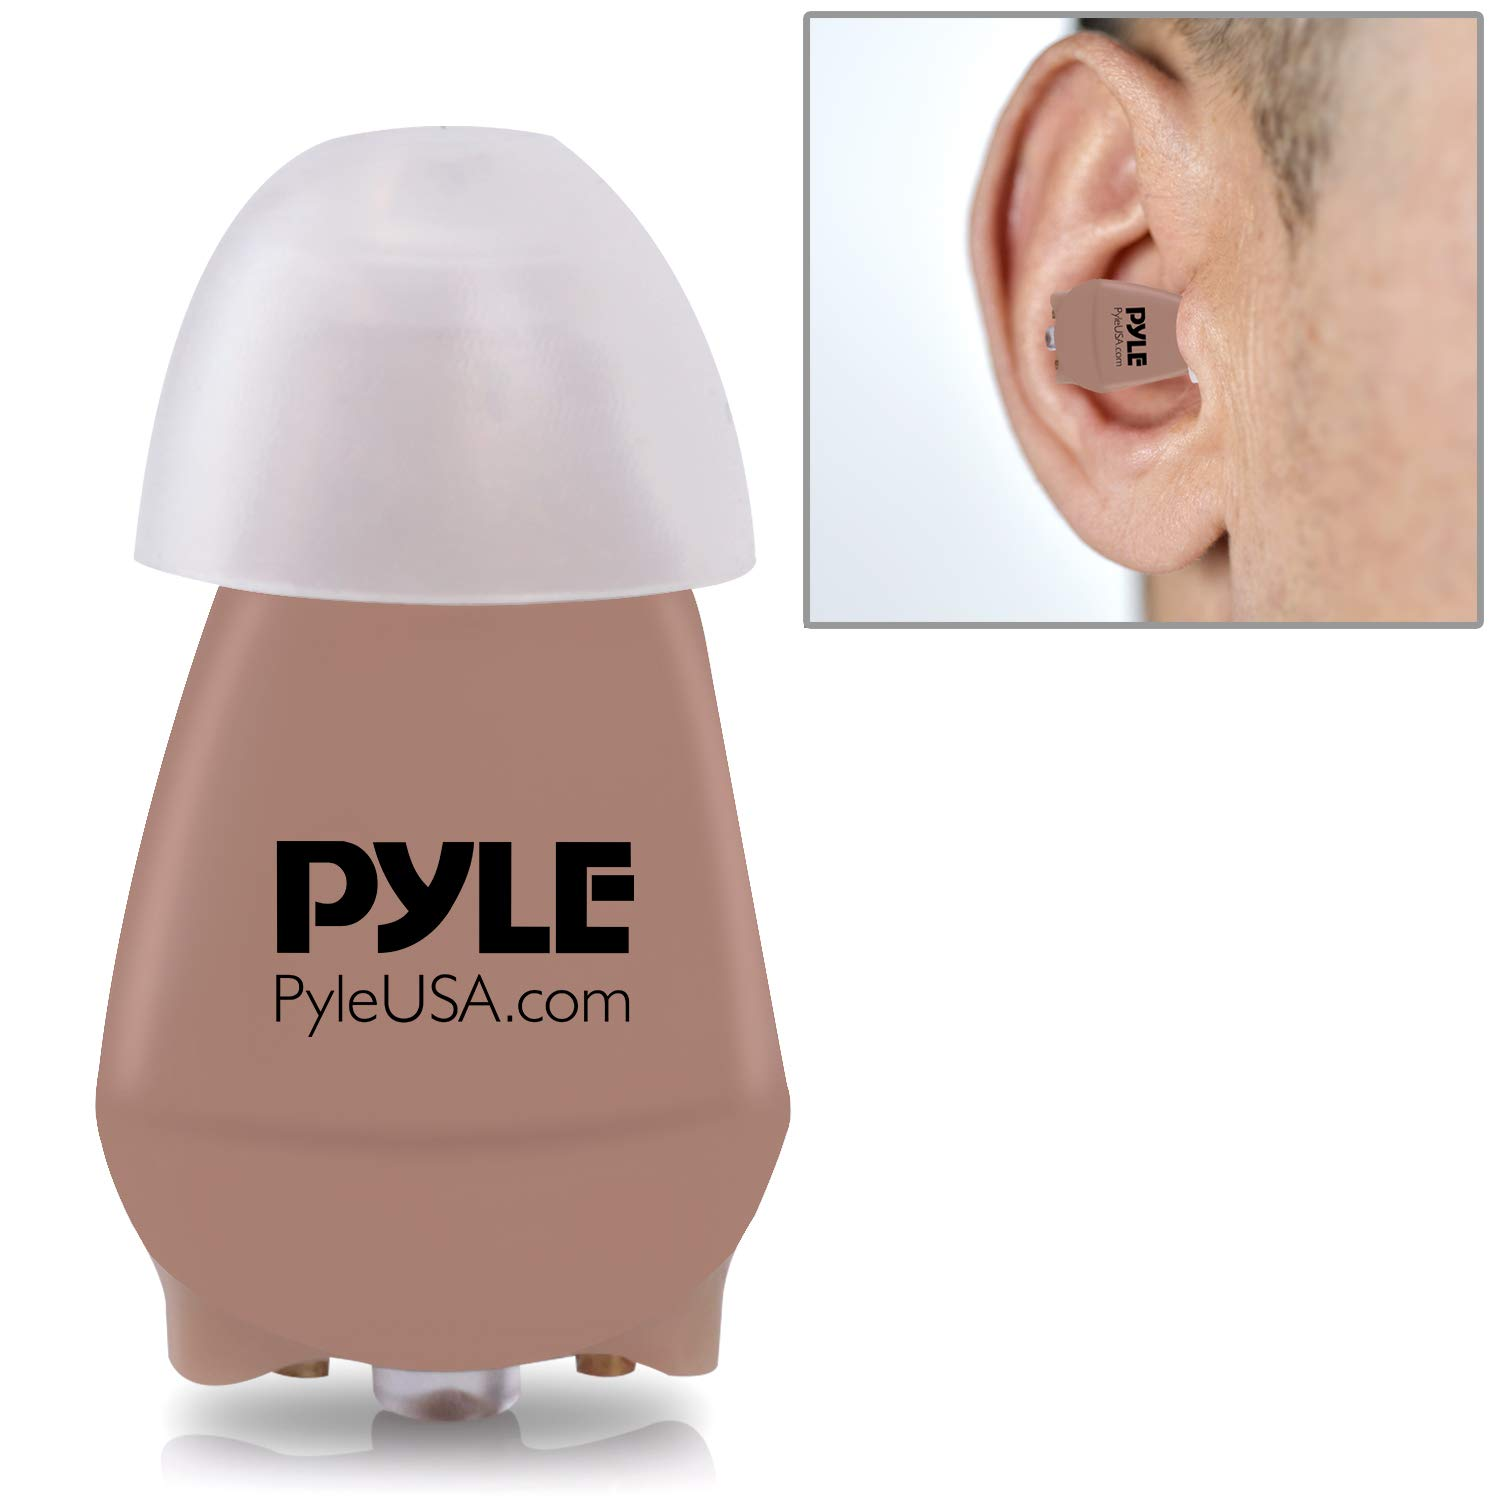 Mini Itc Digital Hearing Device In The Ear Canal Living Aids Amplifiers Accessories Wireless Hear Sound Amplifier Rechargeable Battery Filters Noise Listening Kit